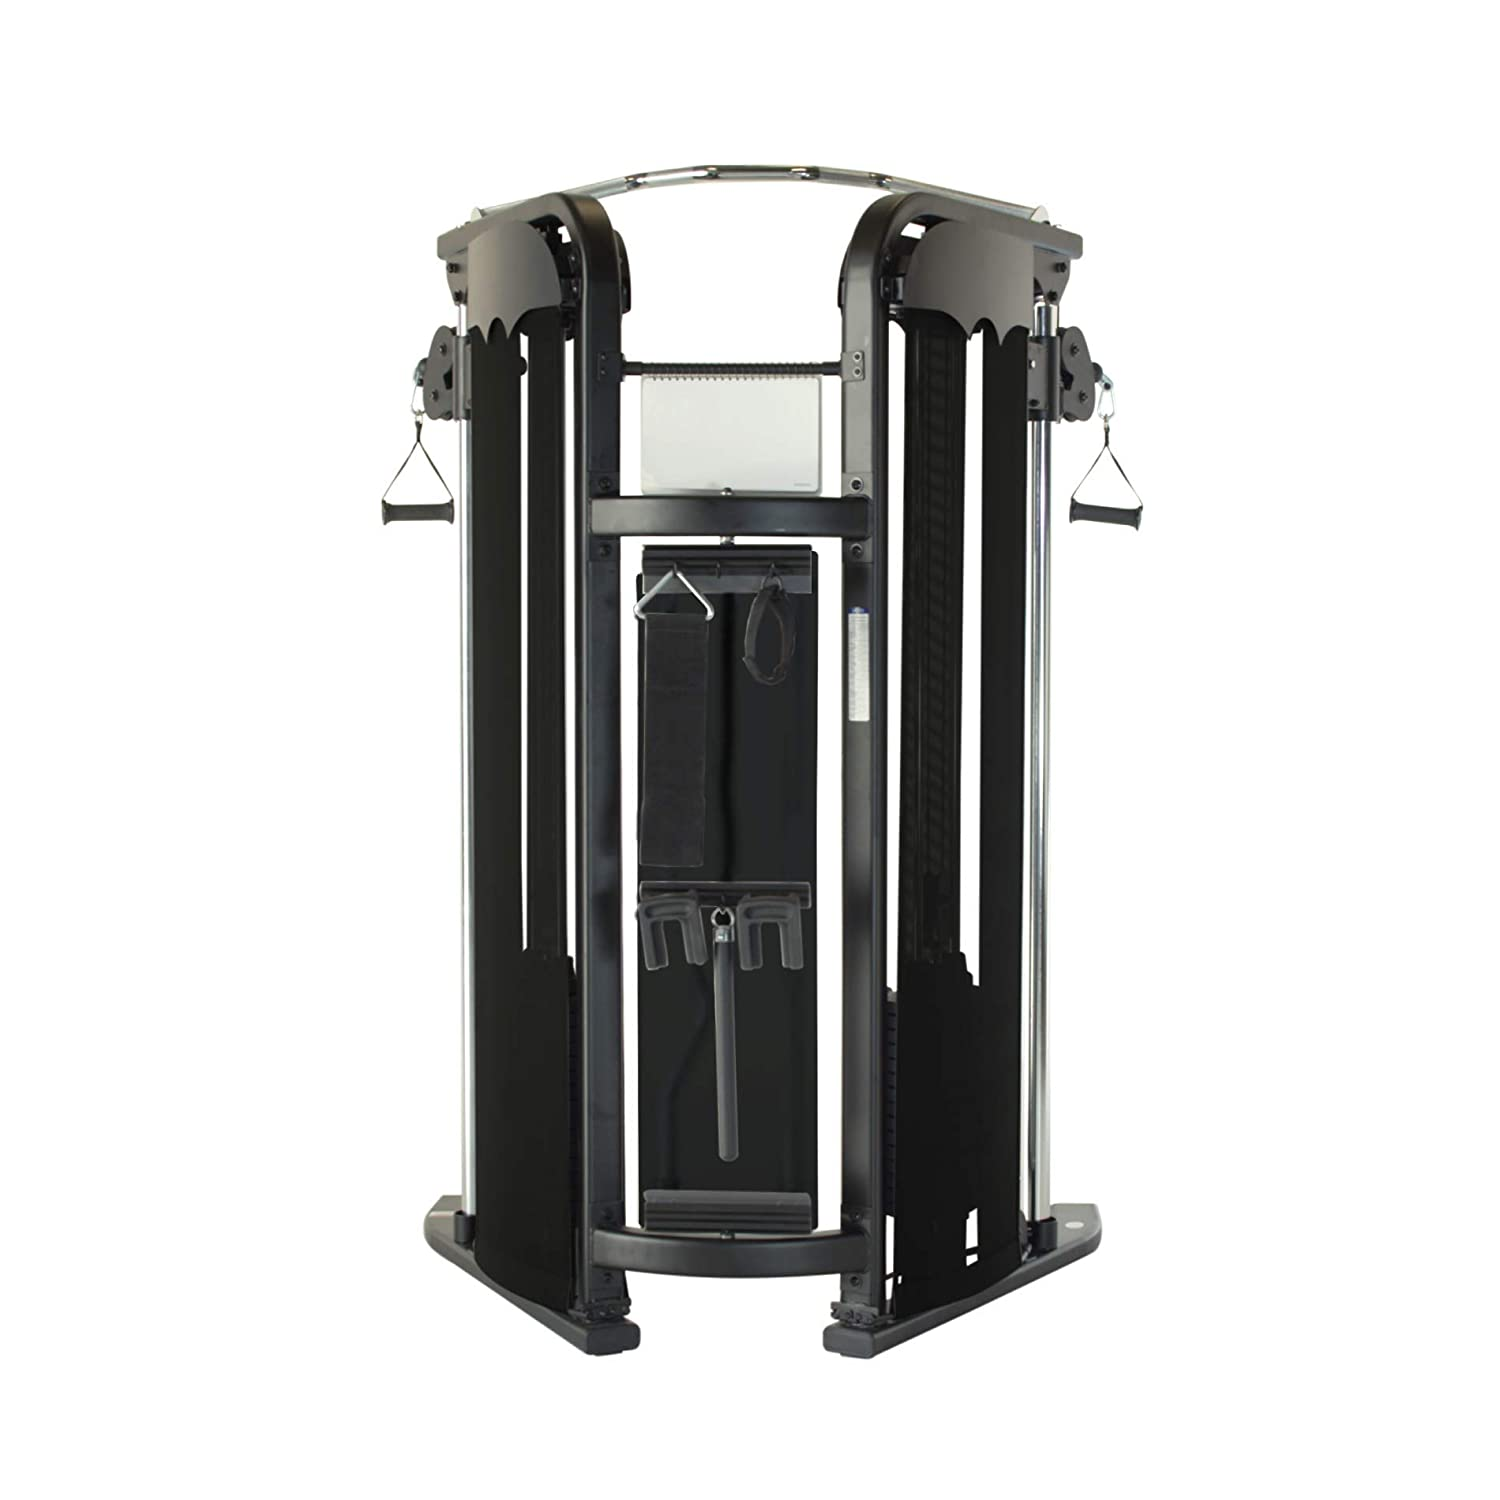 Amazon.com : inspire fitness functional trainer ft1 : home gyms